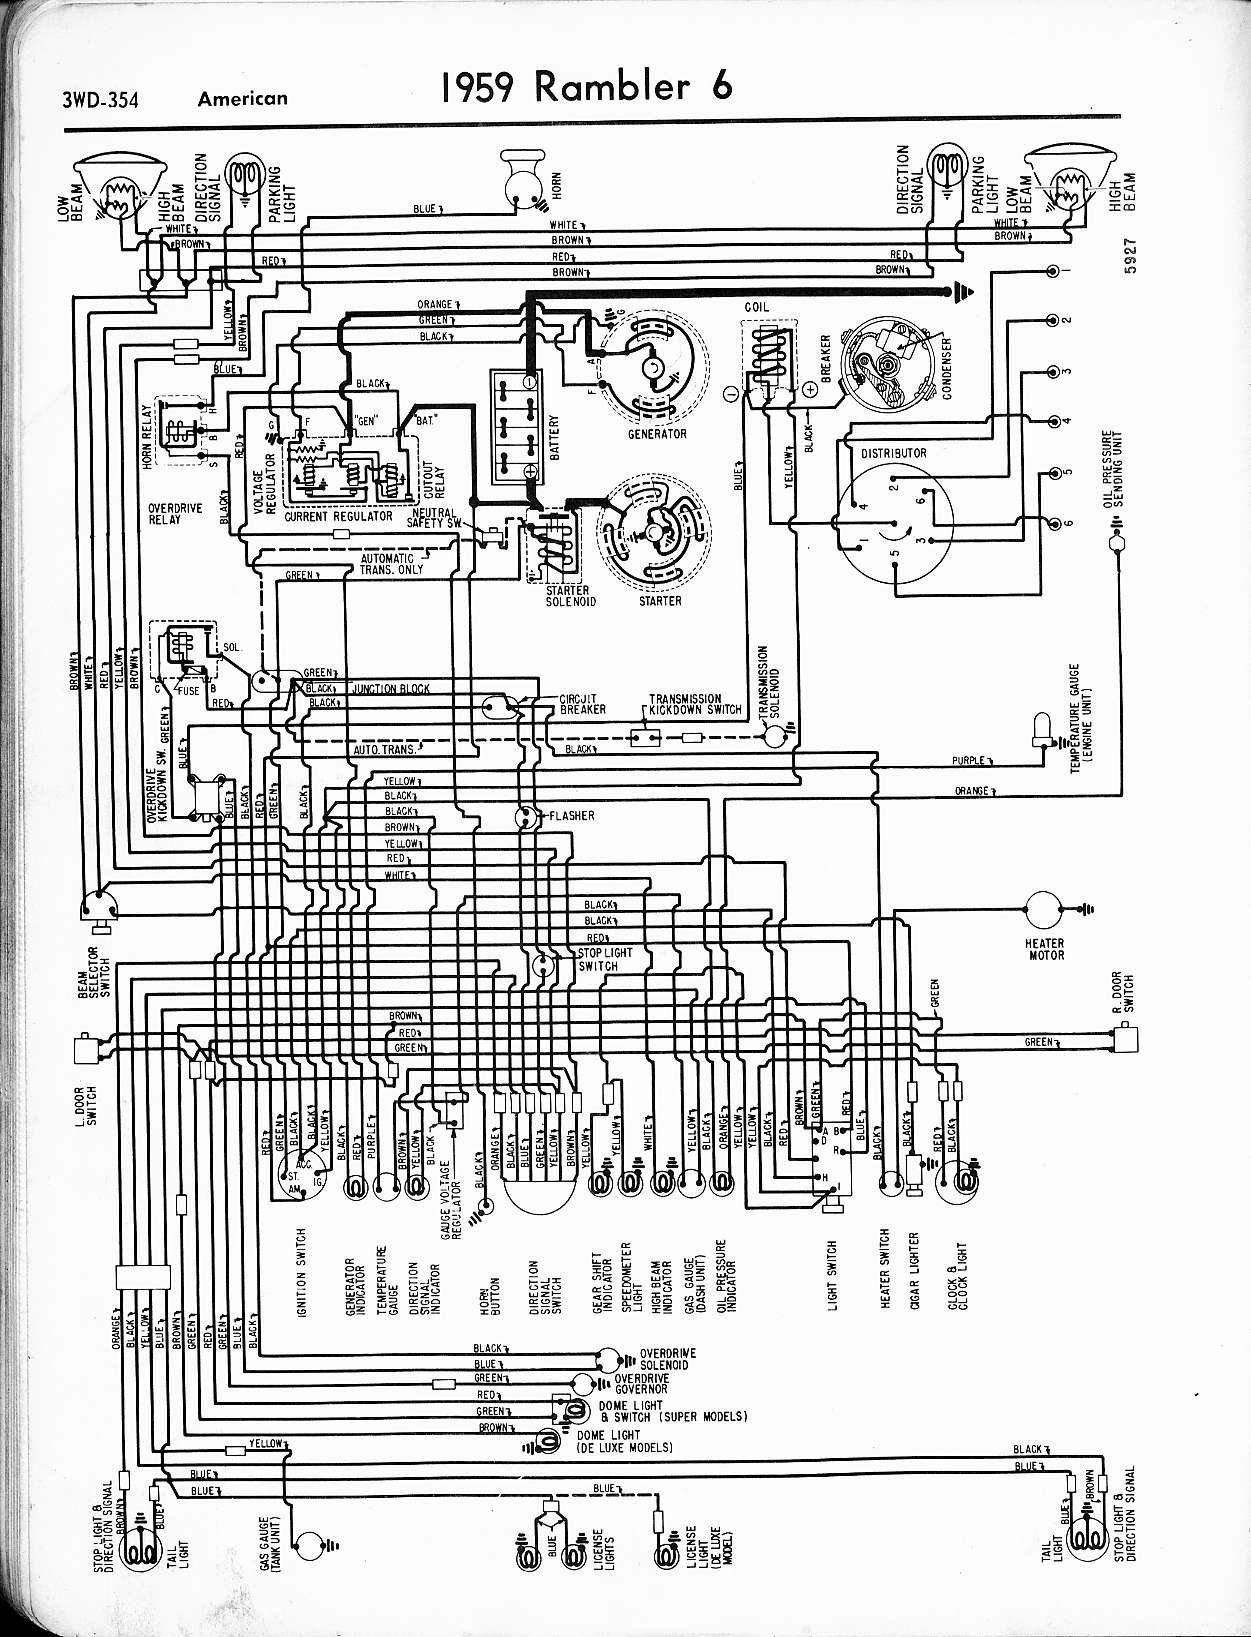 rambler wiring diagrams the old car manual project rh oldcarmanualproject com 1976 AMC 1970 AMC